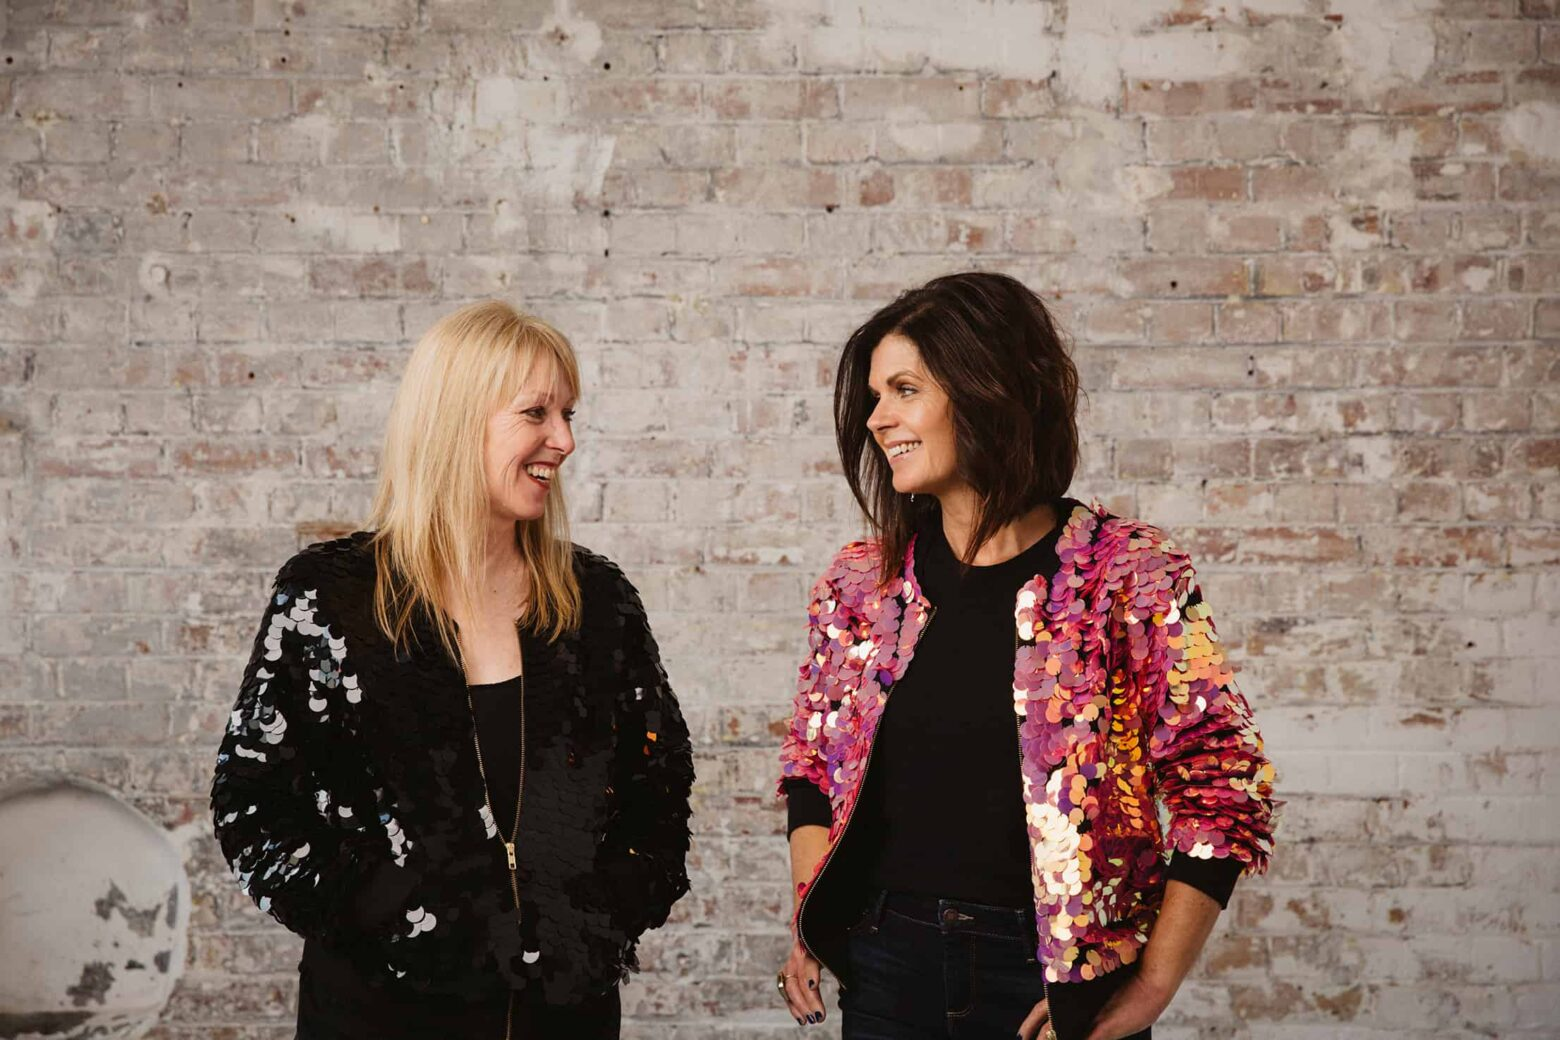 Victoria Swift and Sandra Ewart of V.S. Creative - producers of bespoke events